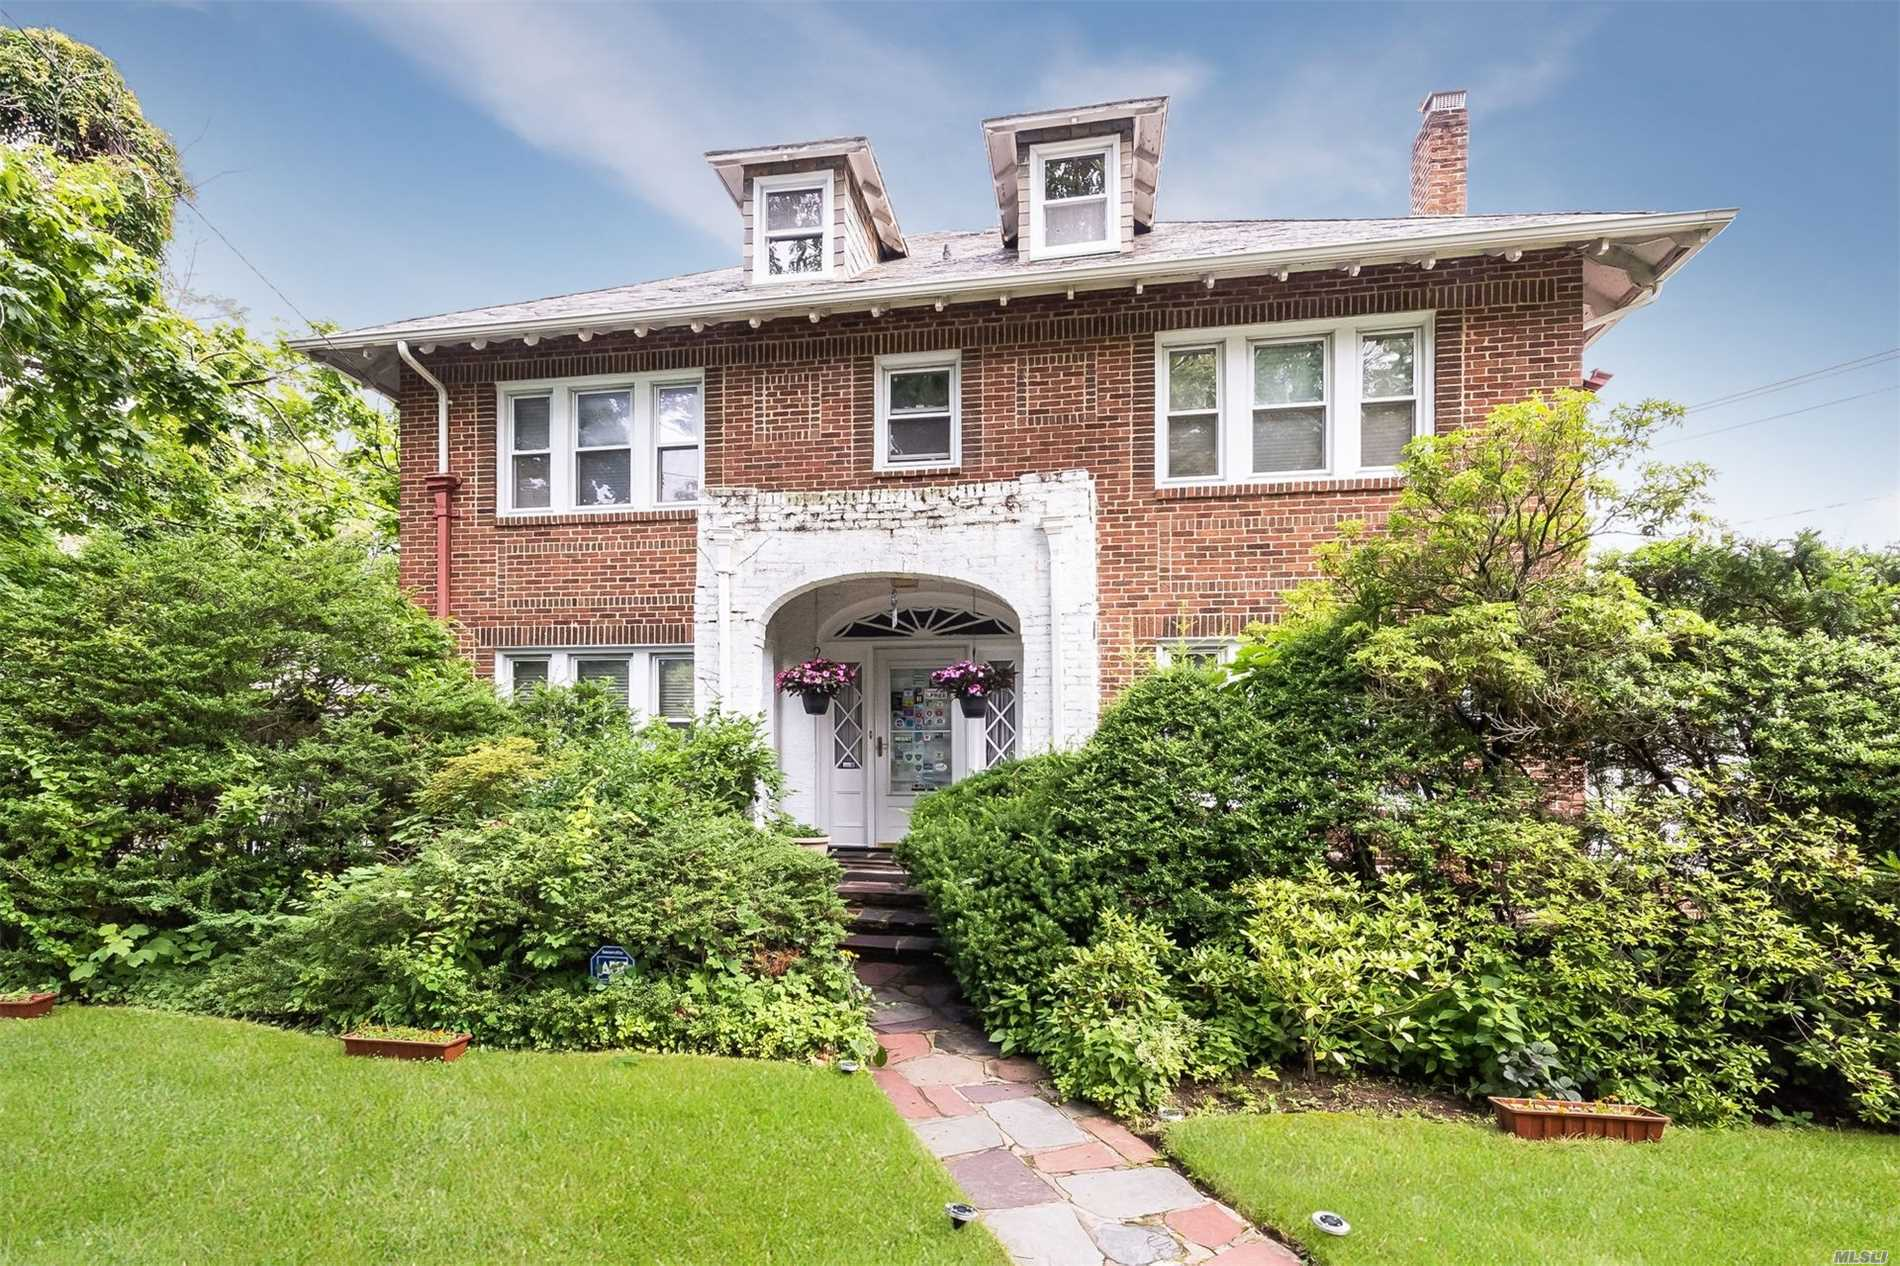 920 Browers Point Br - Woodmere, New York